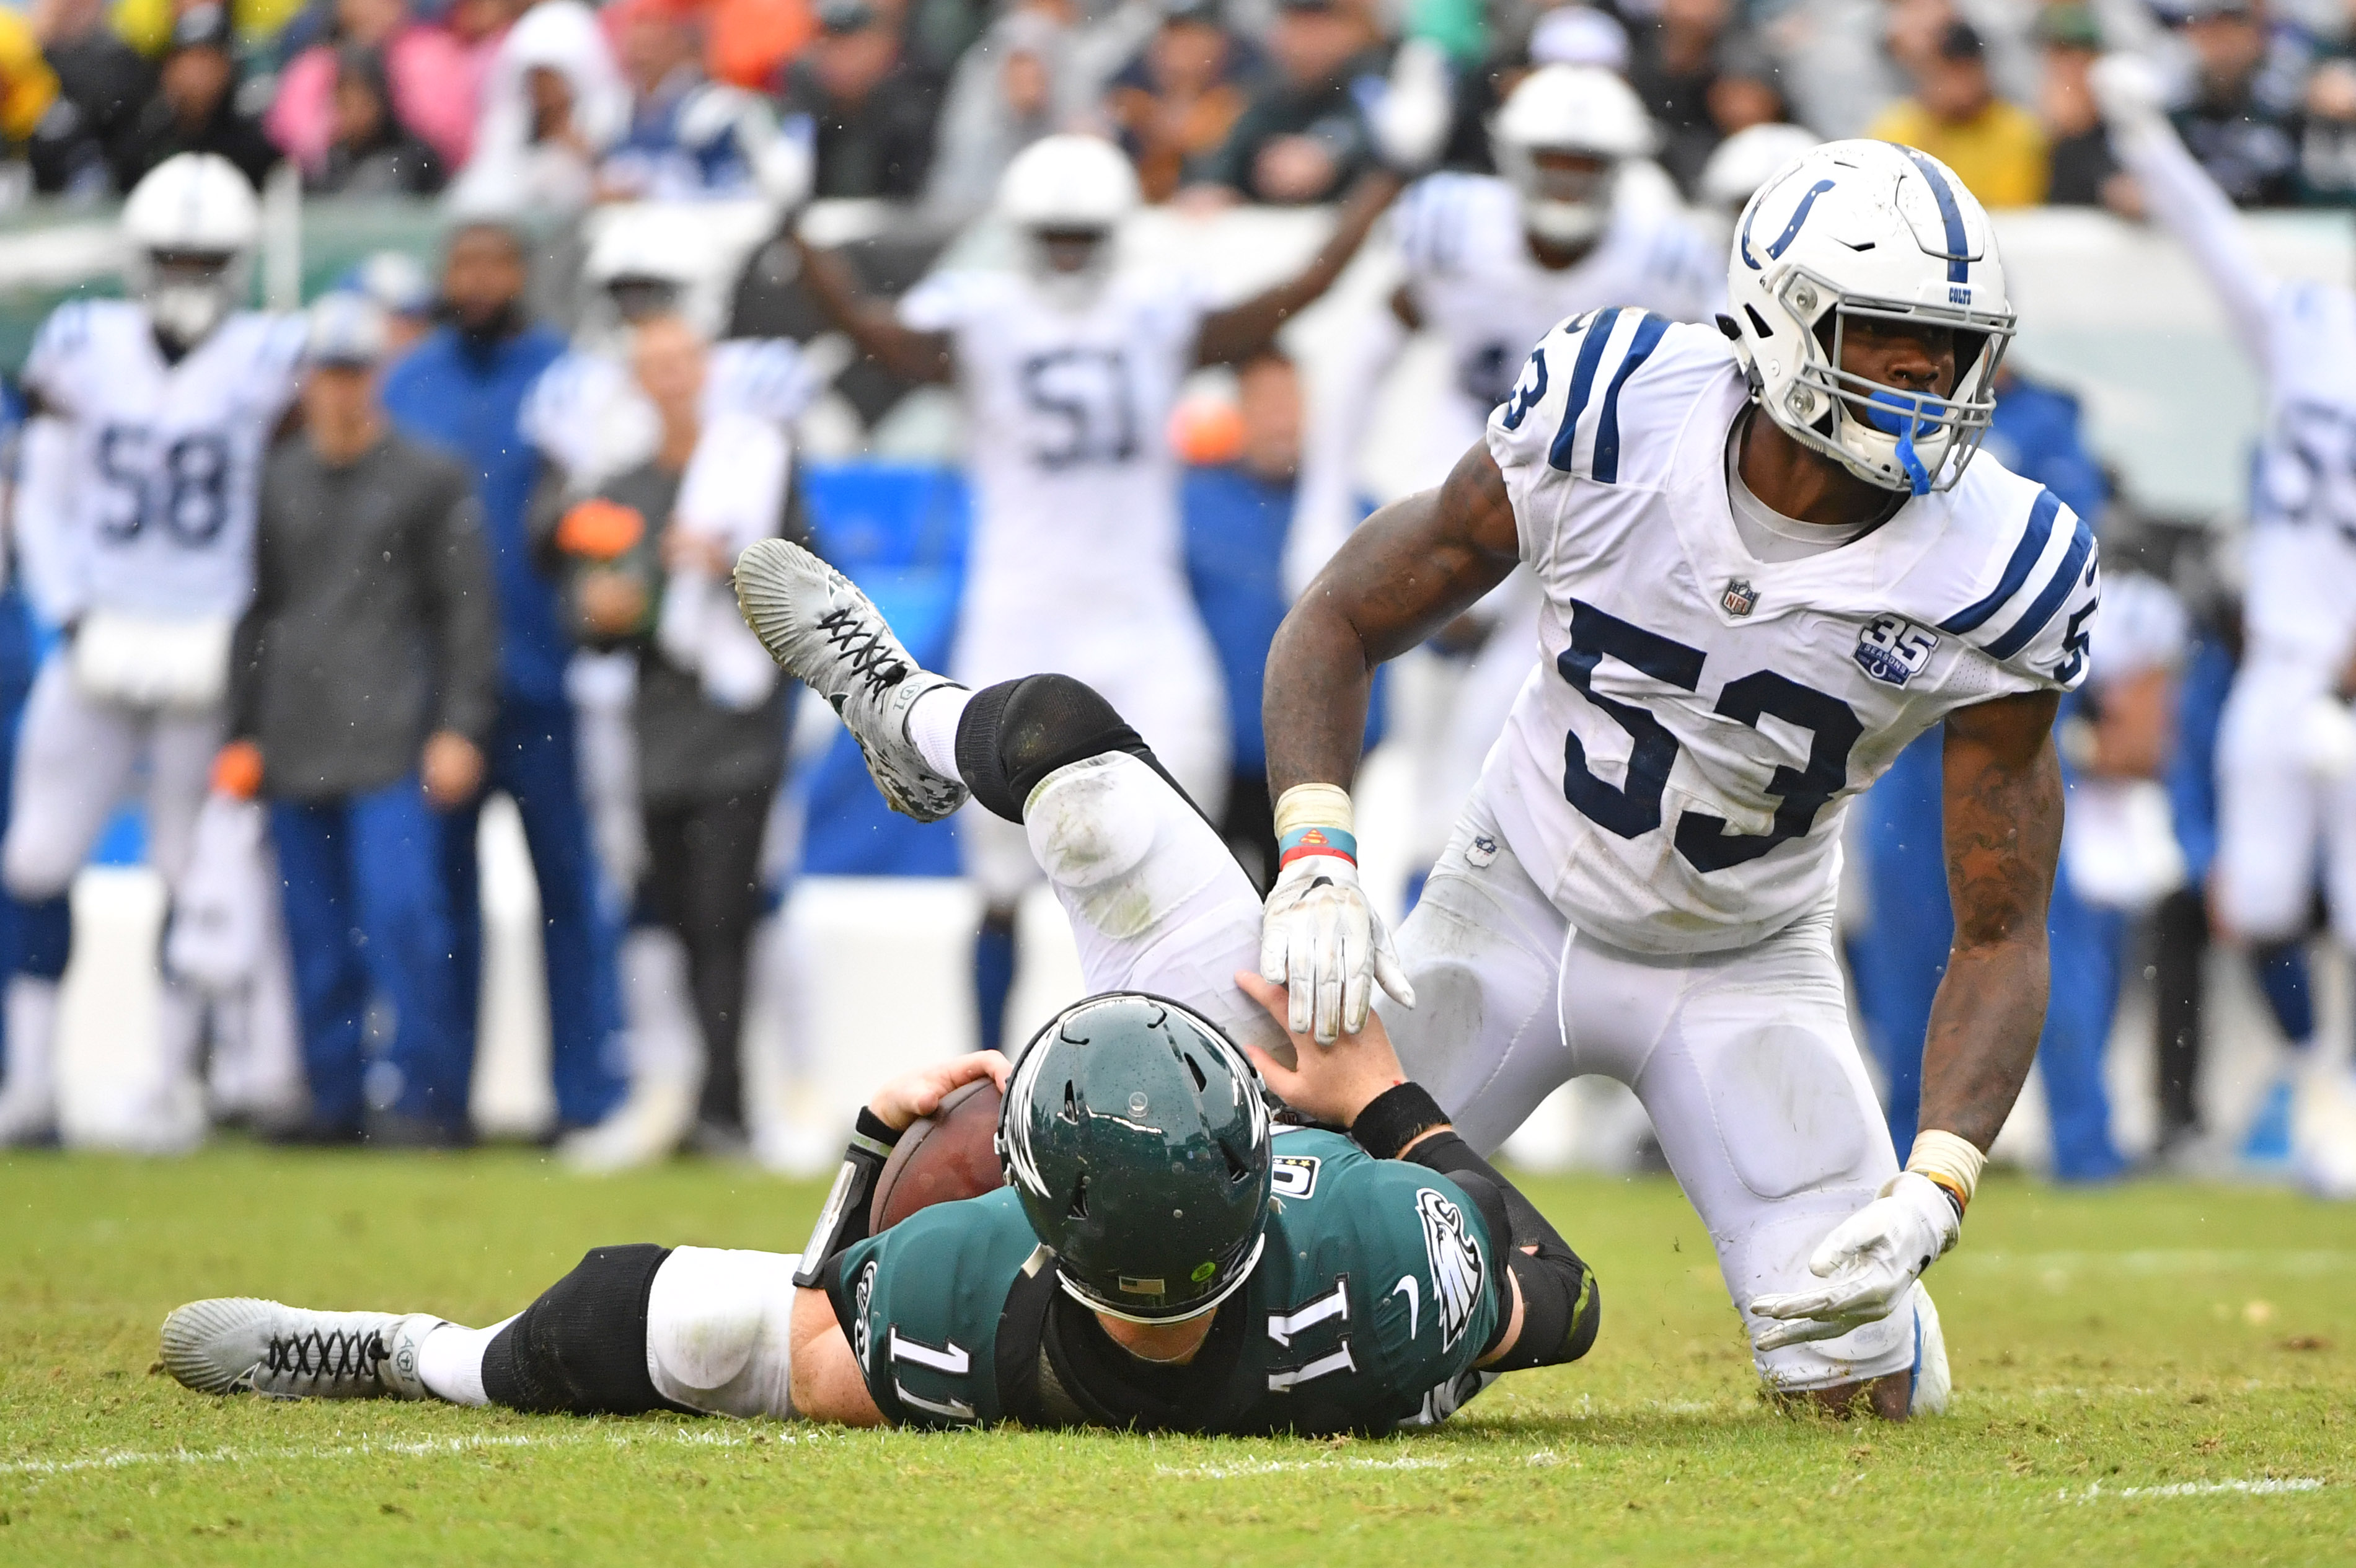 Rookie contract hero: The secret weapon the Colts need for their rebuild